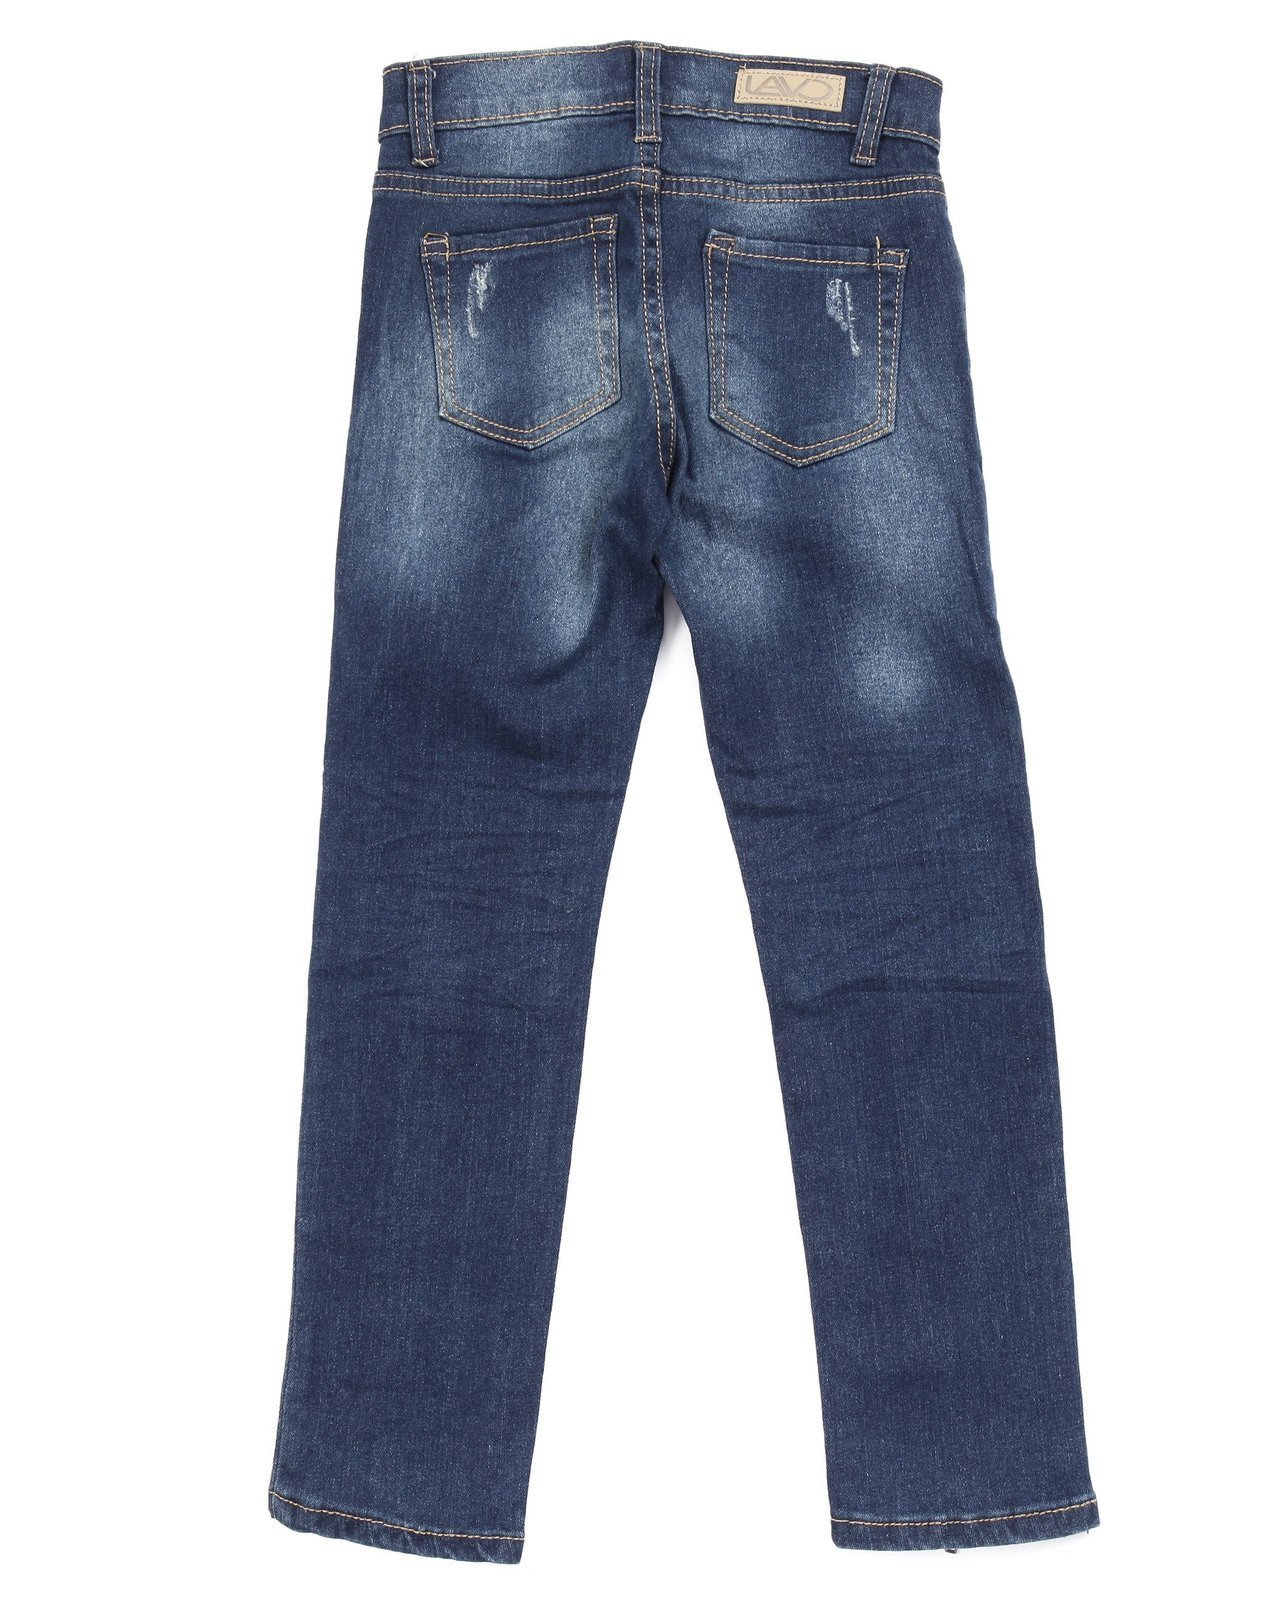 Girls ankle blue Jeans with zippers